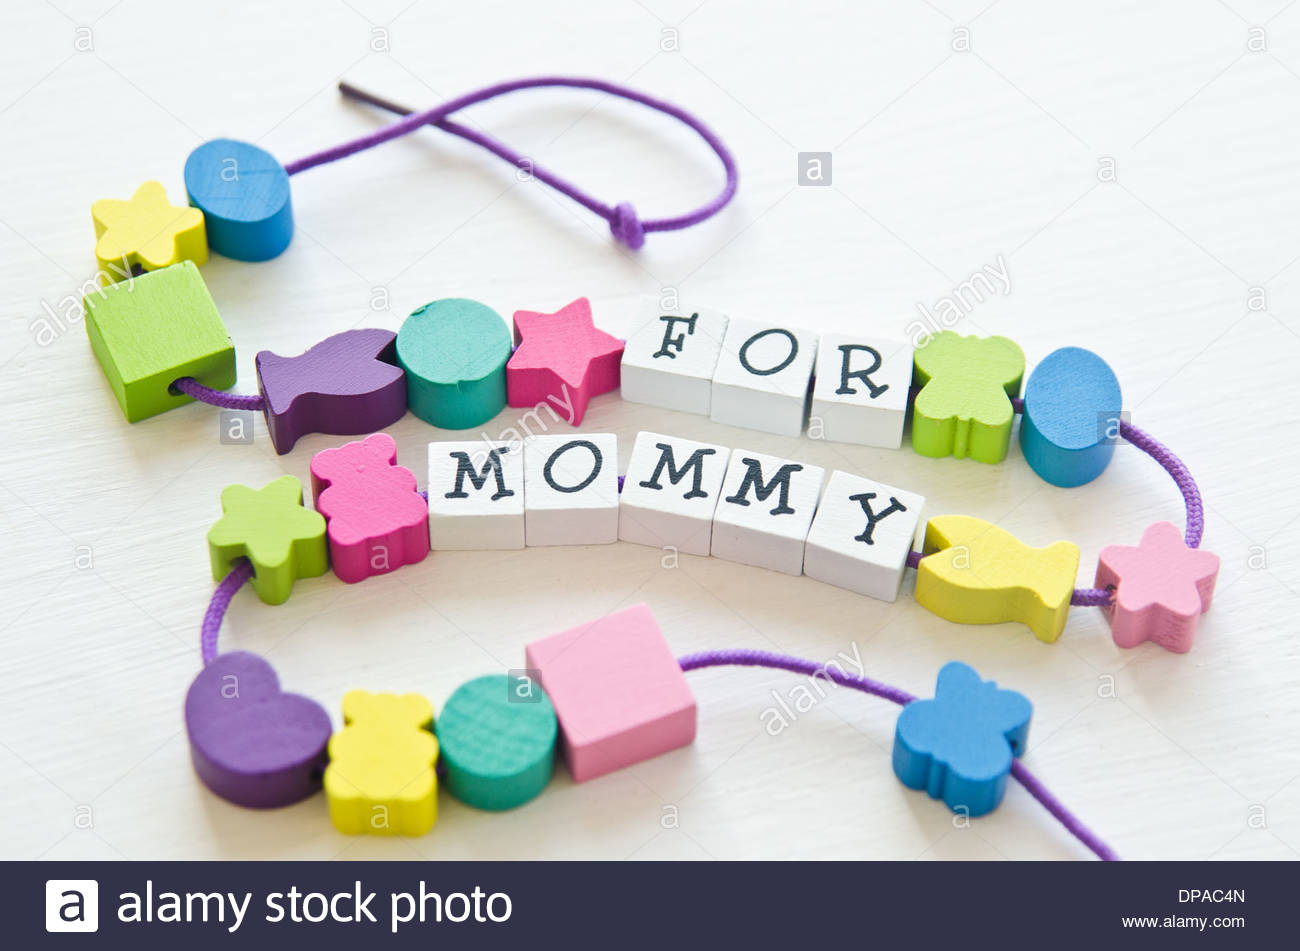 Colorful wooden toy beads in different shapes with letters that spell 'For mommy' strung together with cord on white background. - Stock Image